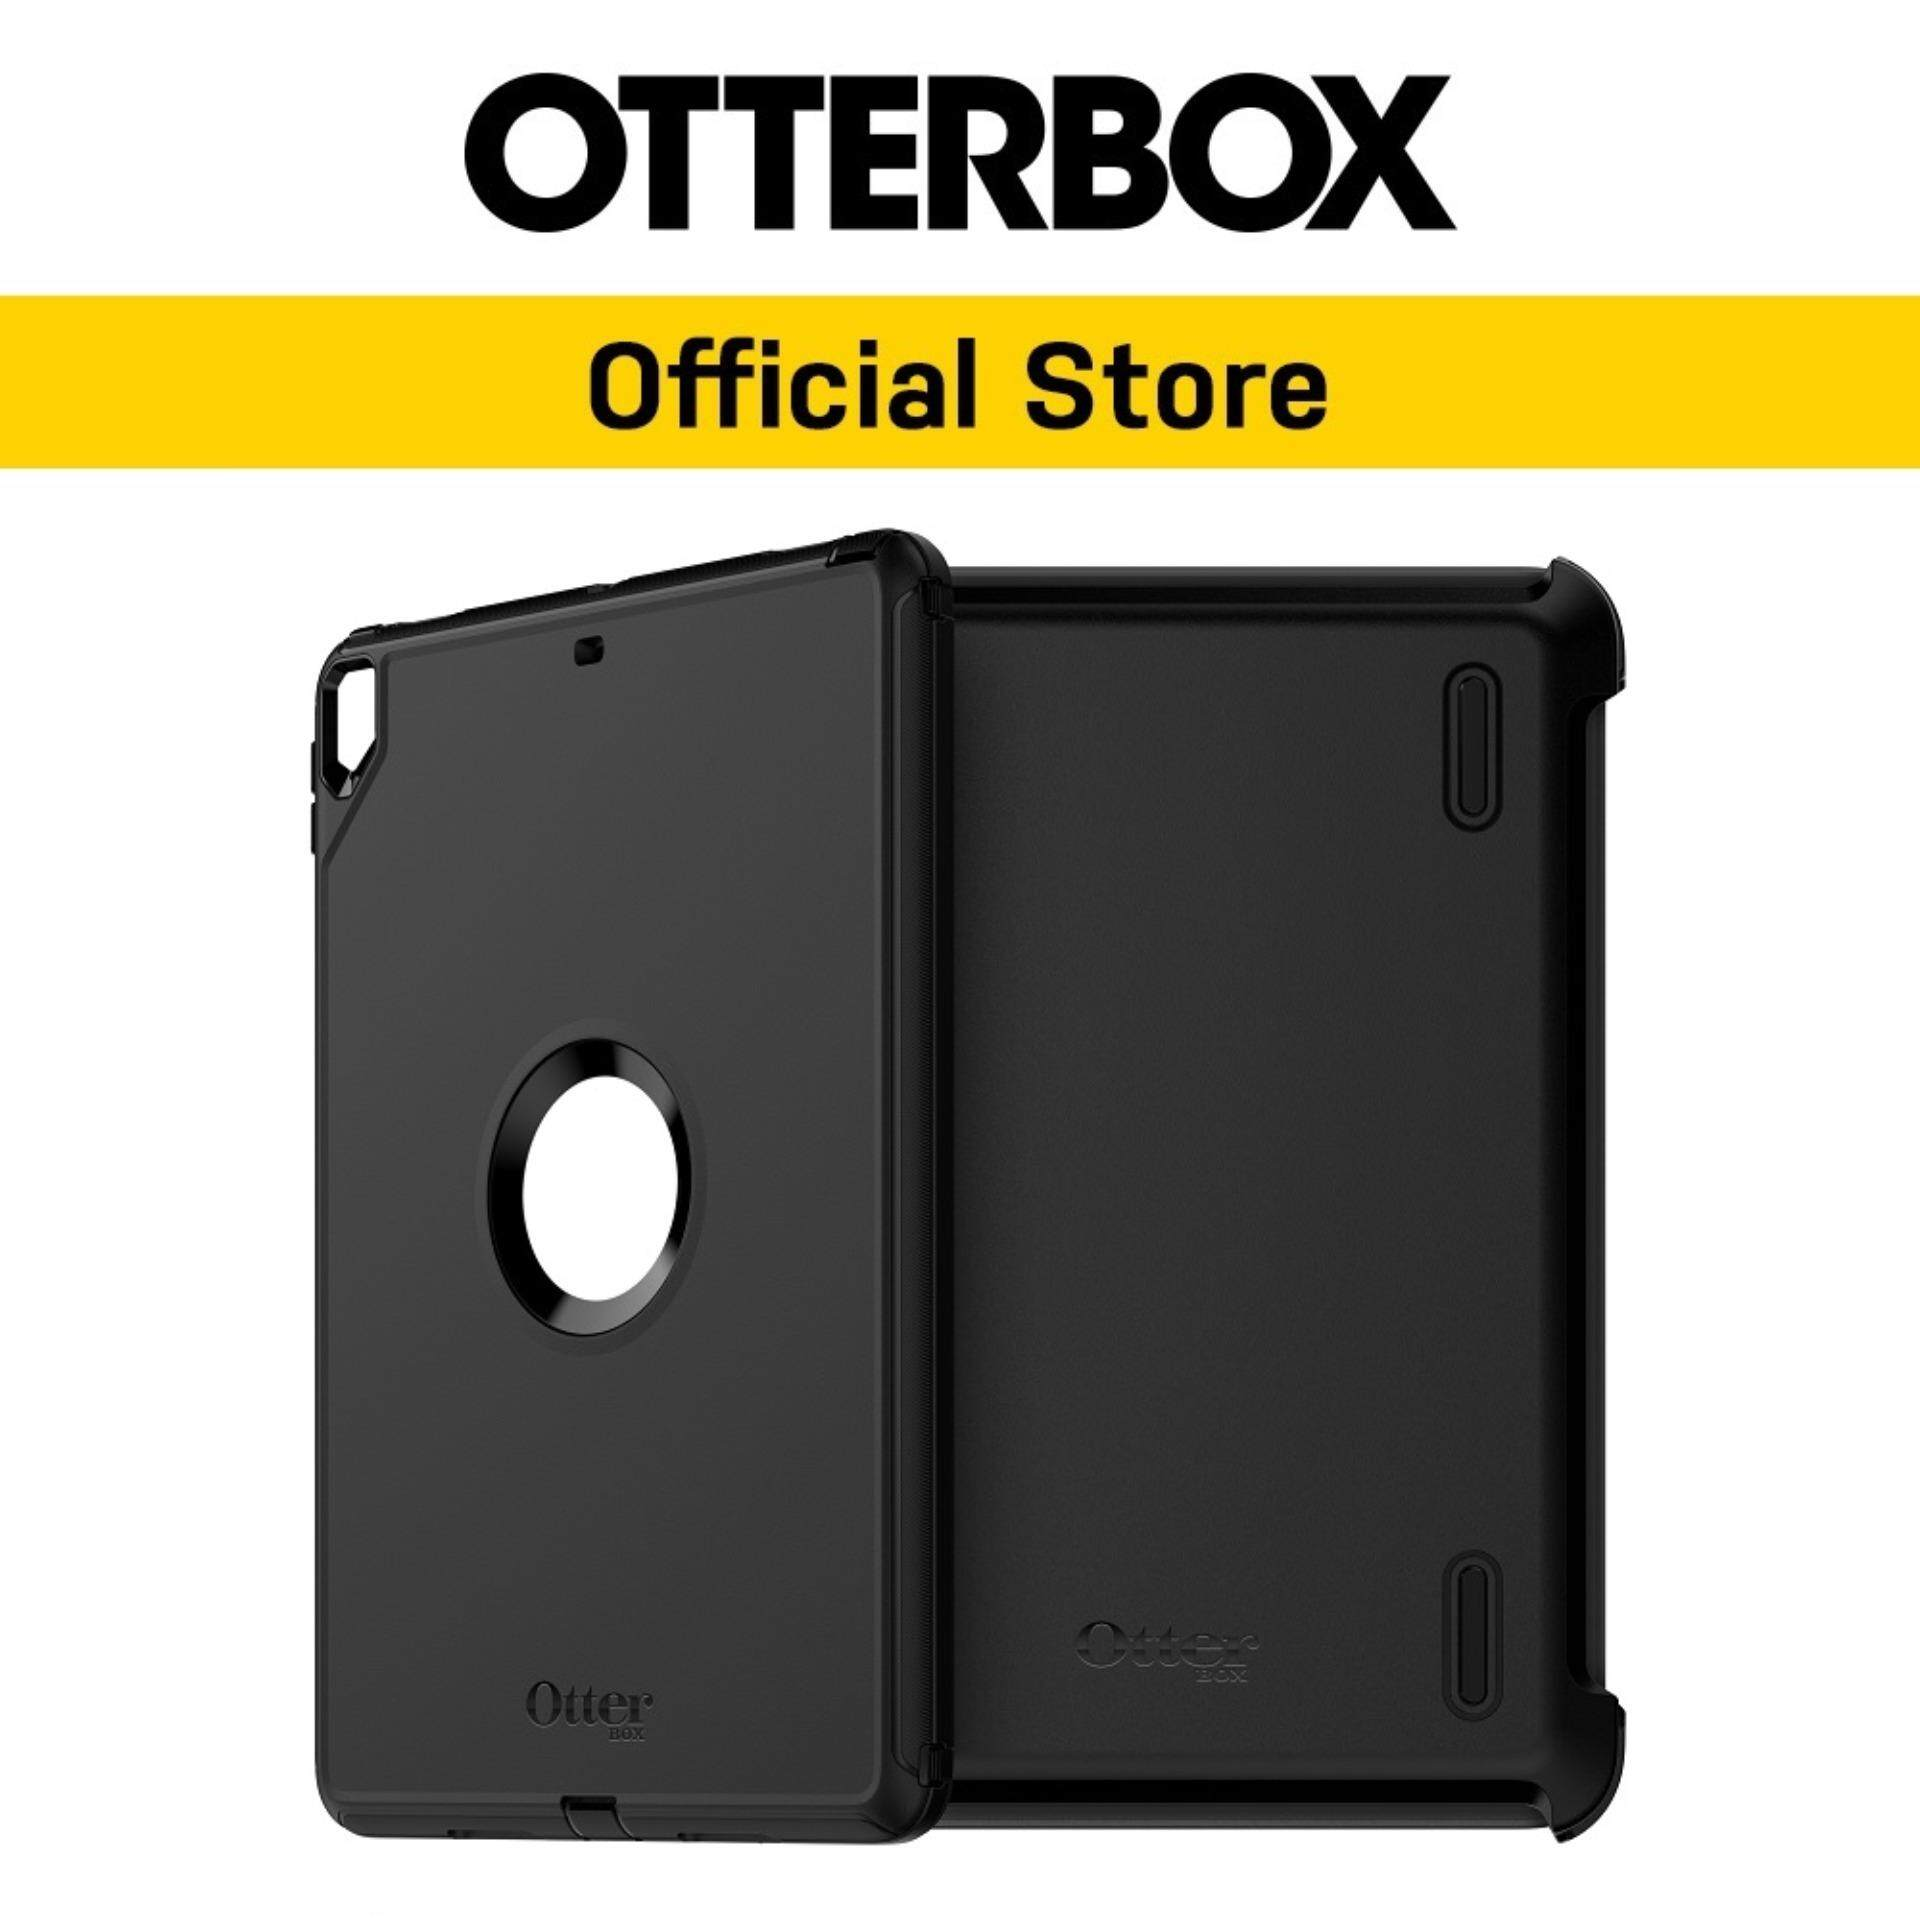 new product dbbd1 ae79e OtterBox Malaysia - Buy at best price in Malaysia | Lazada.com.my